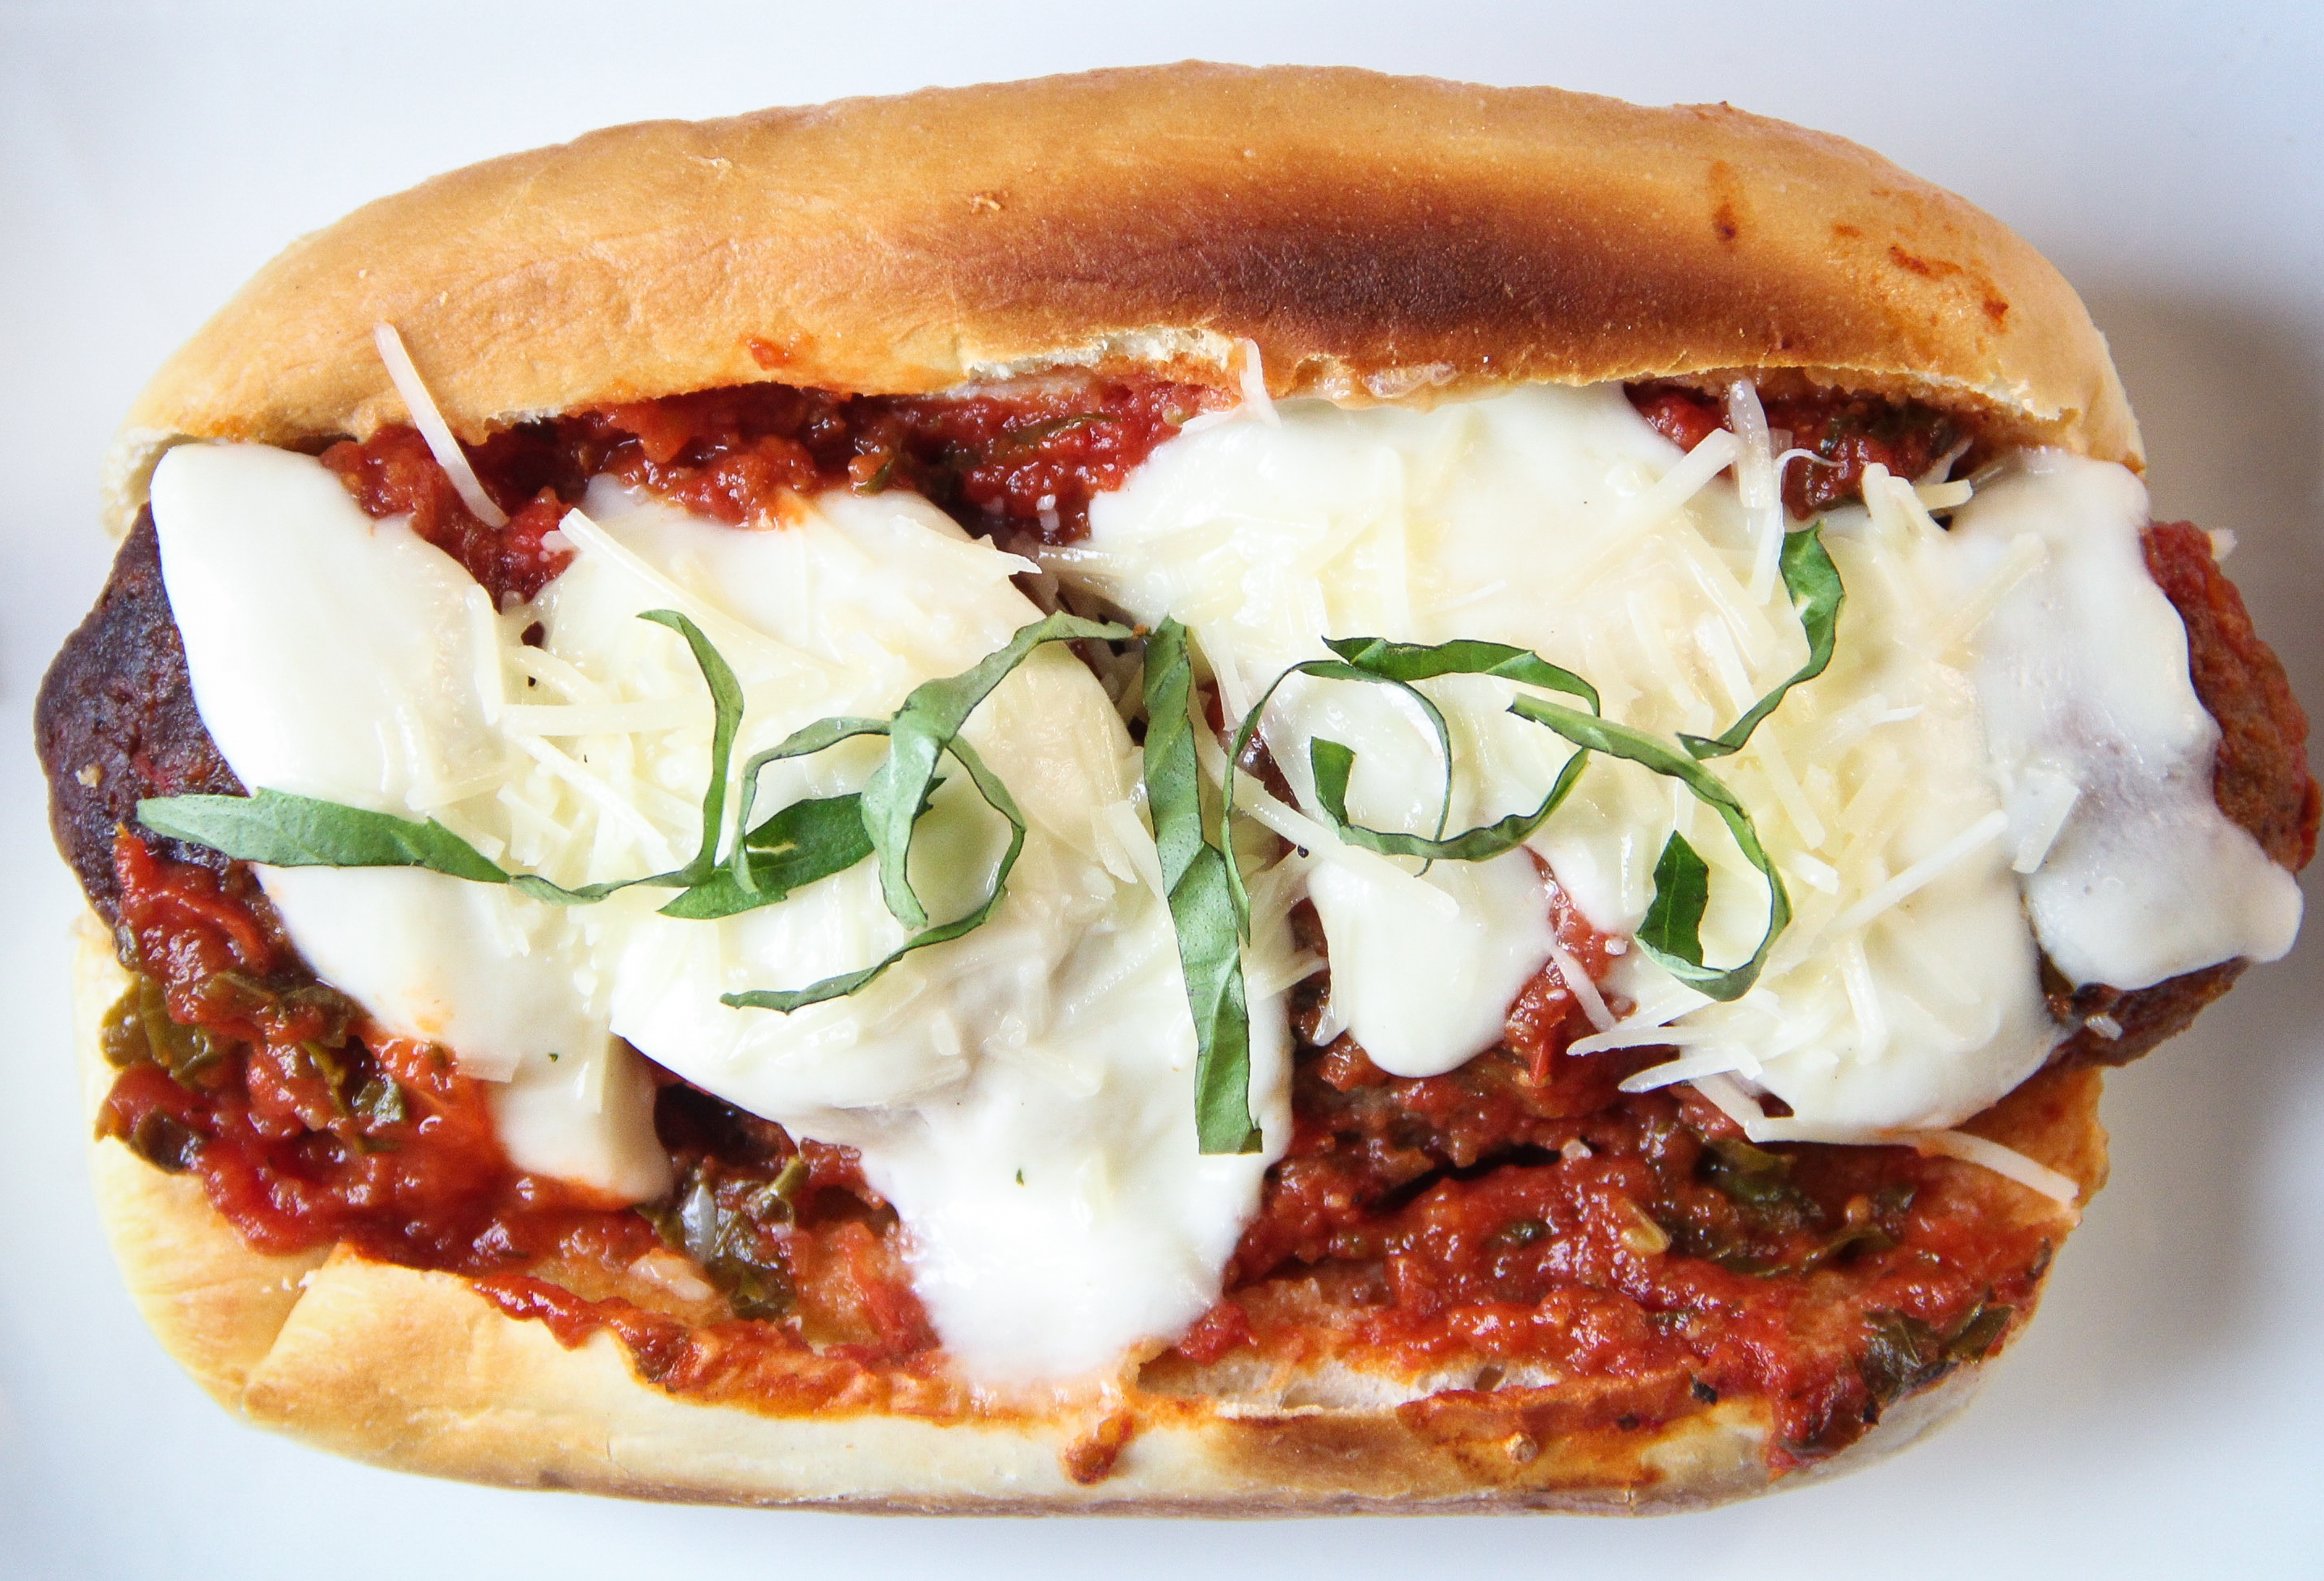 Forbidden Rice Blog | Meatless Meatball Subs (7 of 8)